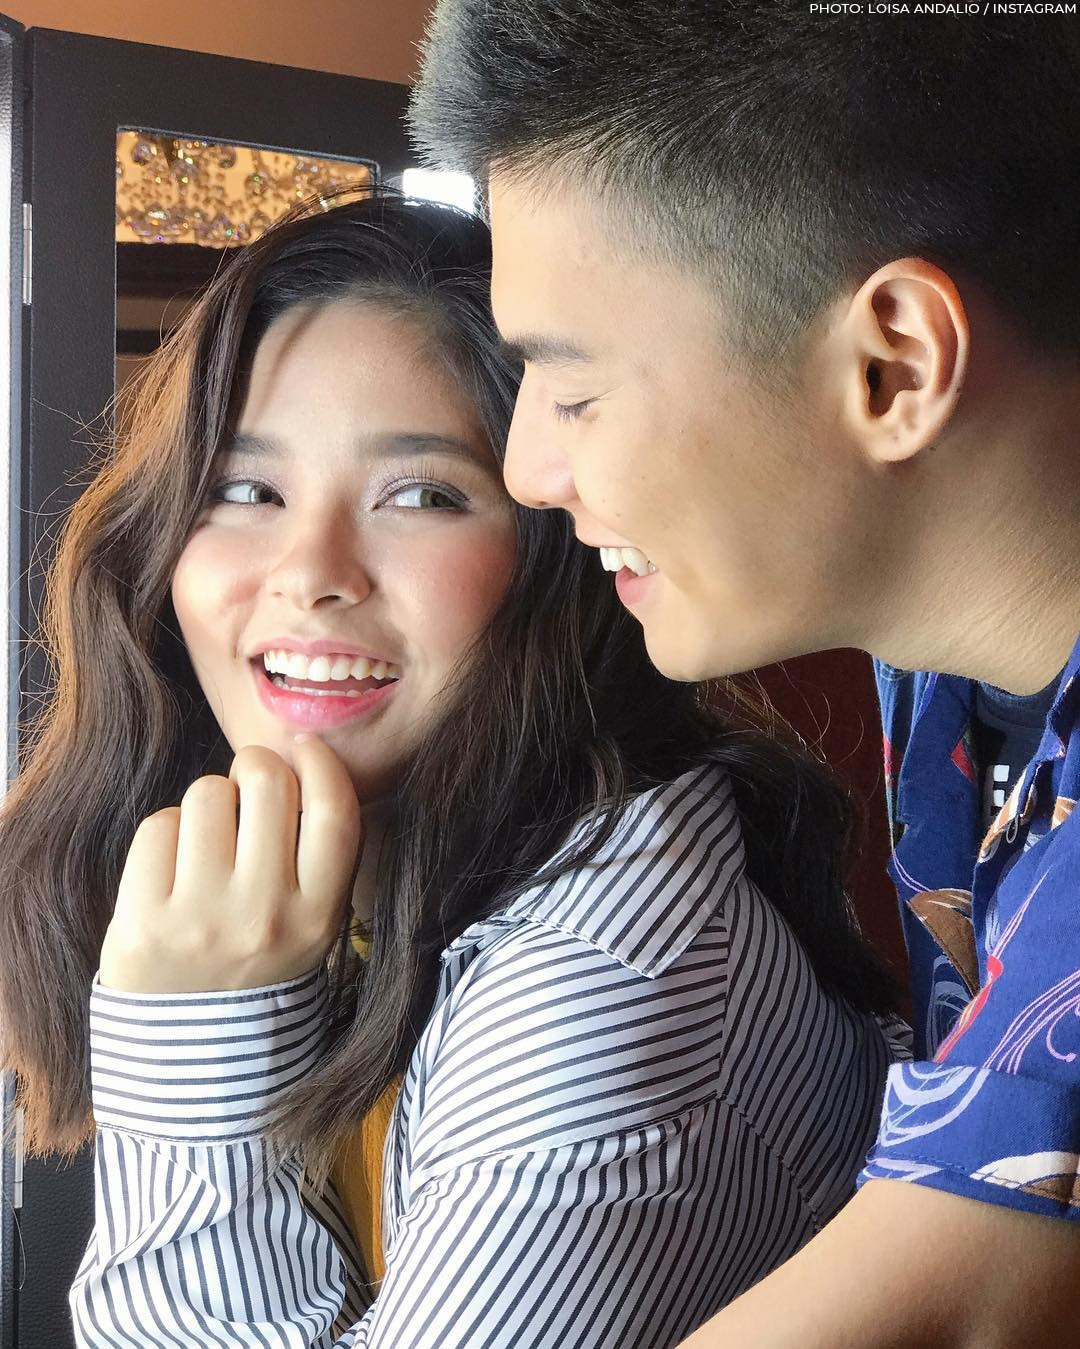 Ronnie's boyfriend moments that will make you feel envious of Loisa!